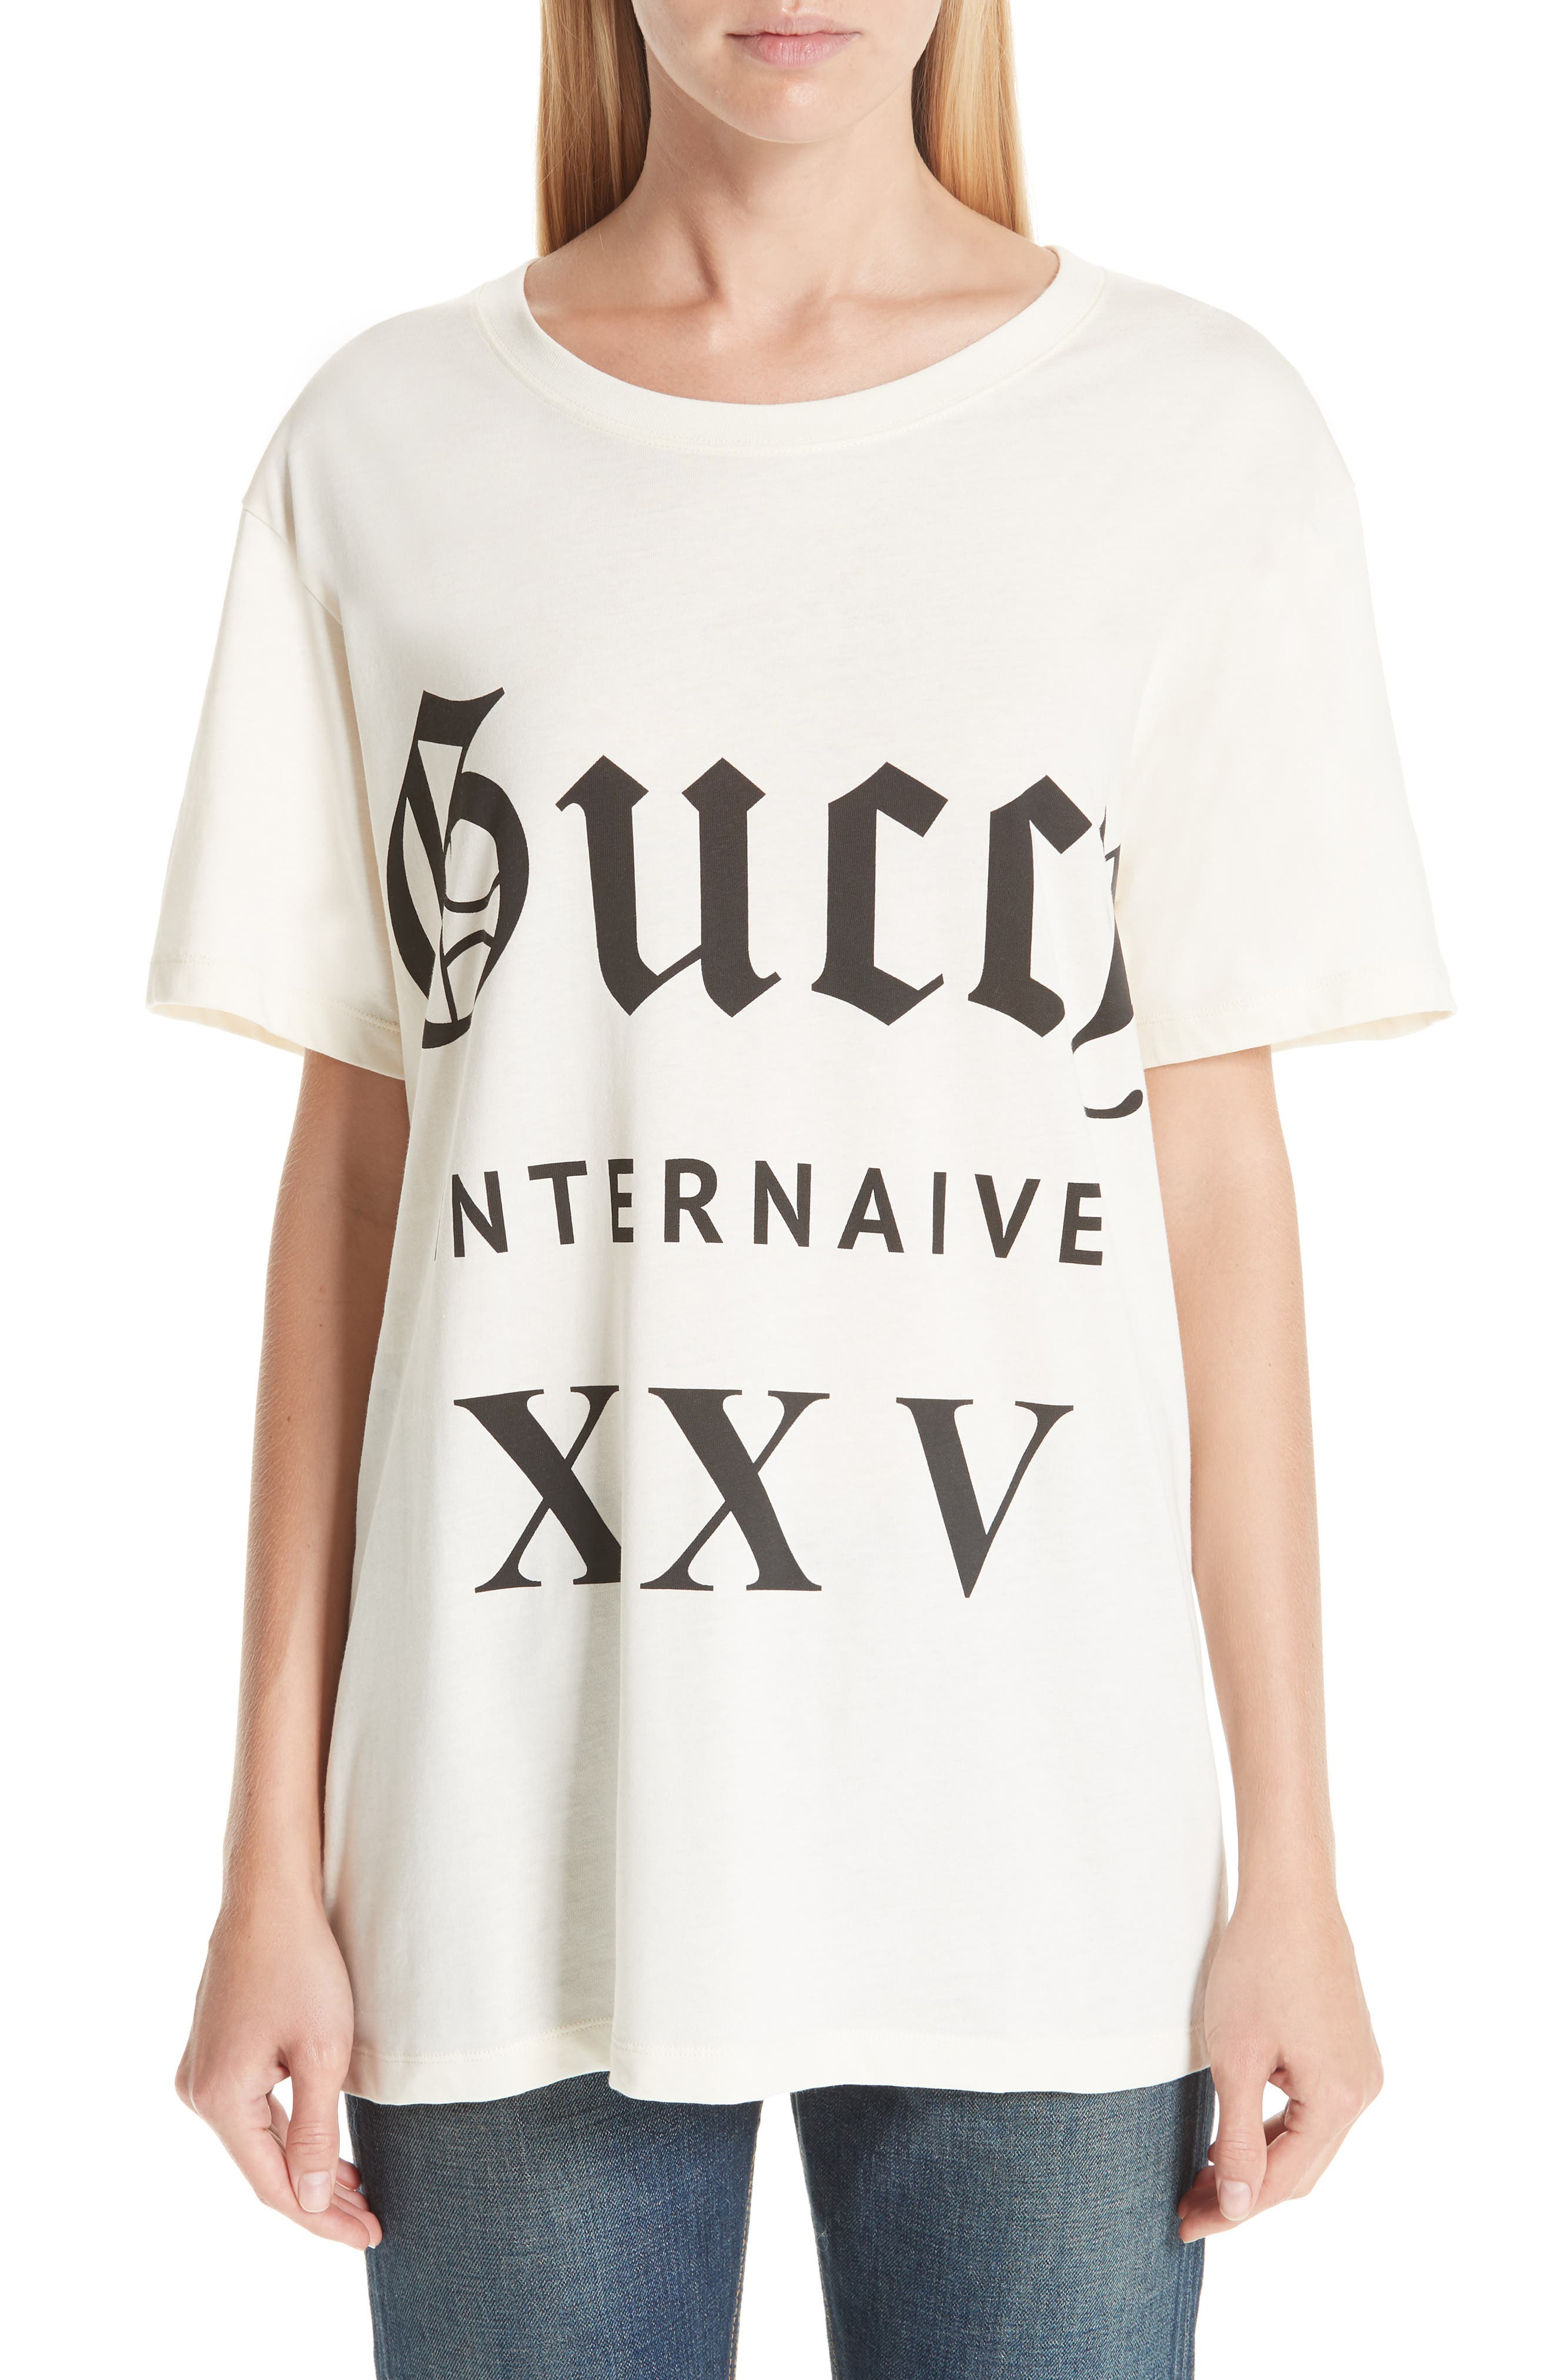 GUCCY INTERNAIVE PRINT COTTON JERSEY TEE from Nordstrom